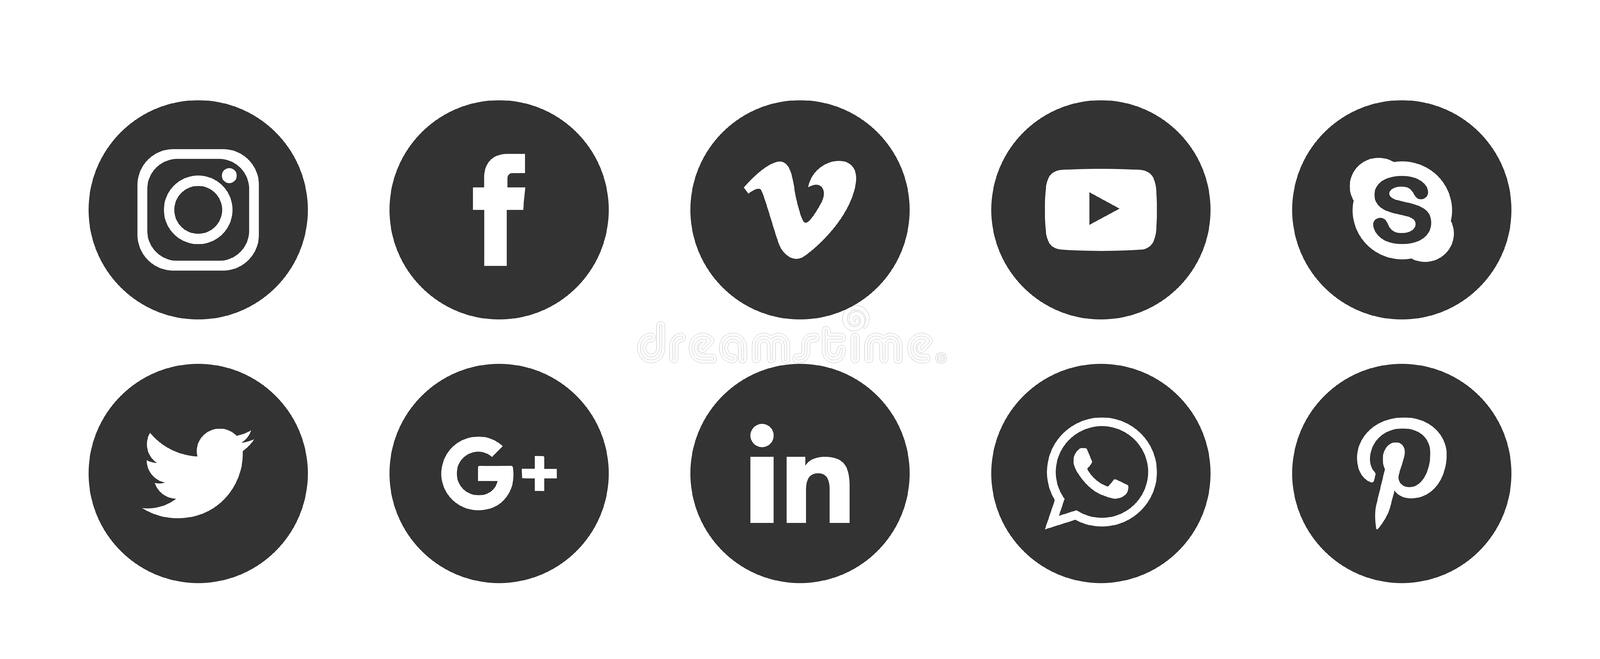 Set of popular social media logos icons Instagram Facebook Twitter Youtube WhatsApp vimeo pinterest linkedin  element vector royalty free illustration